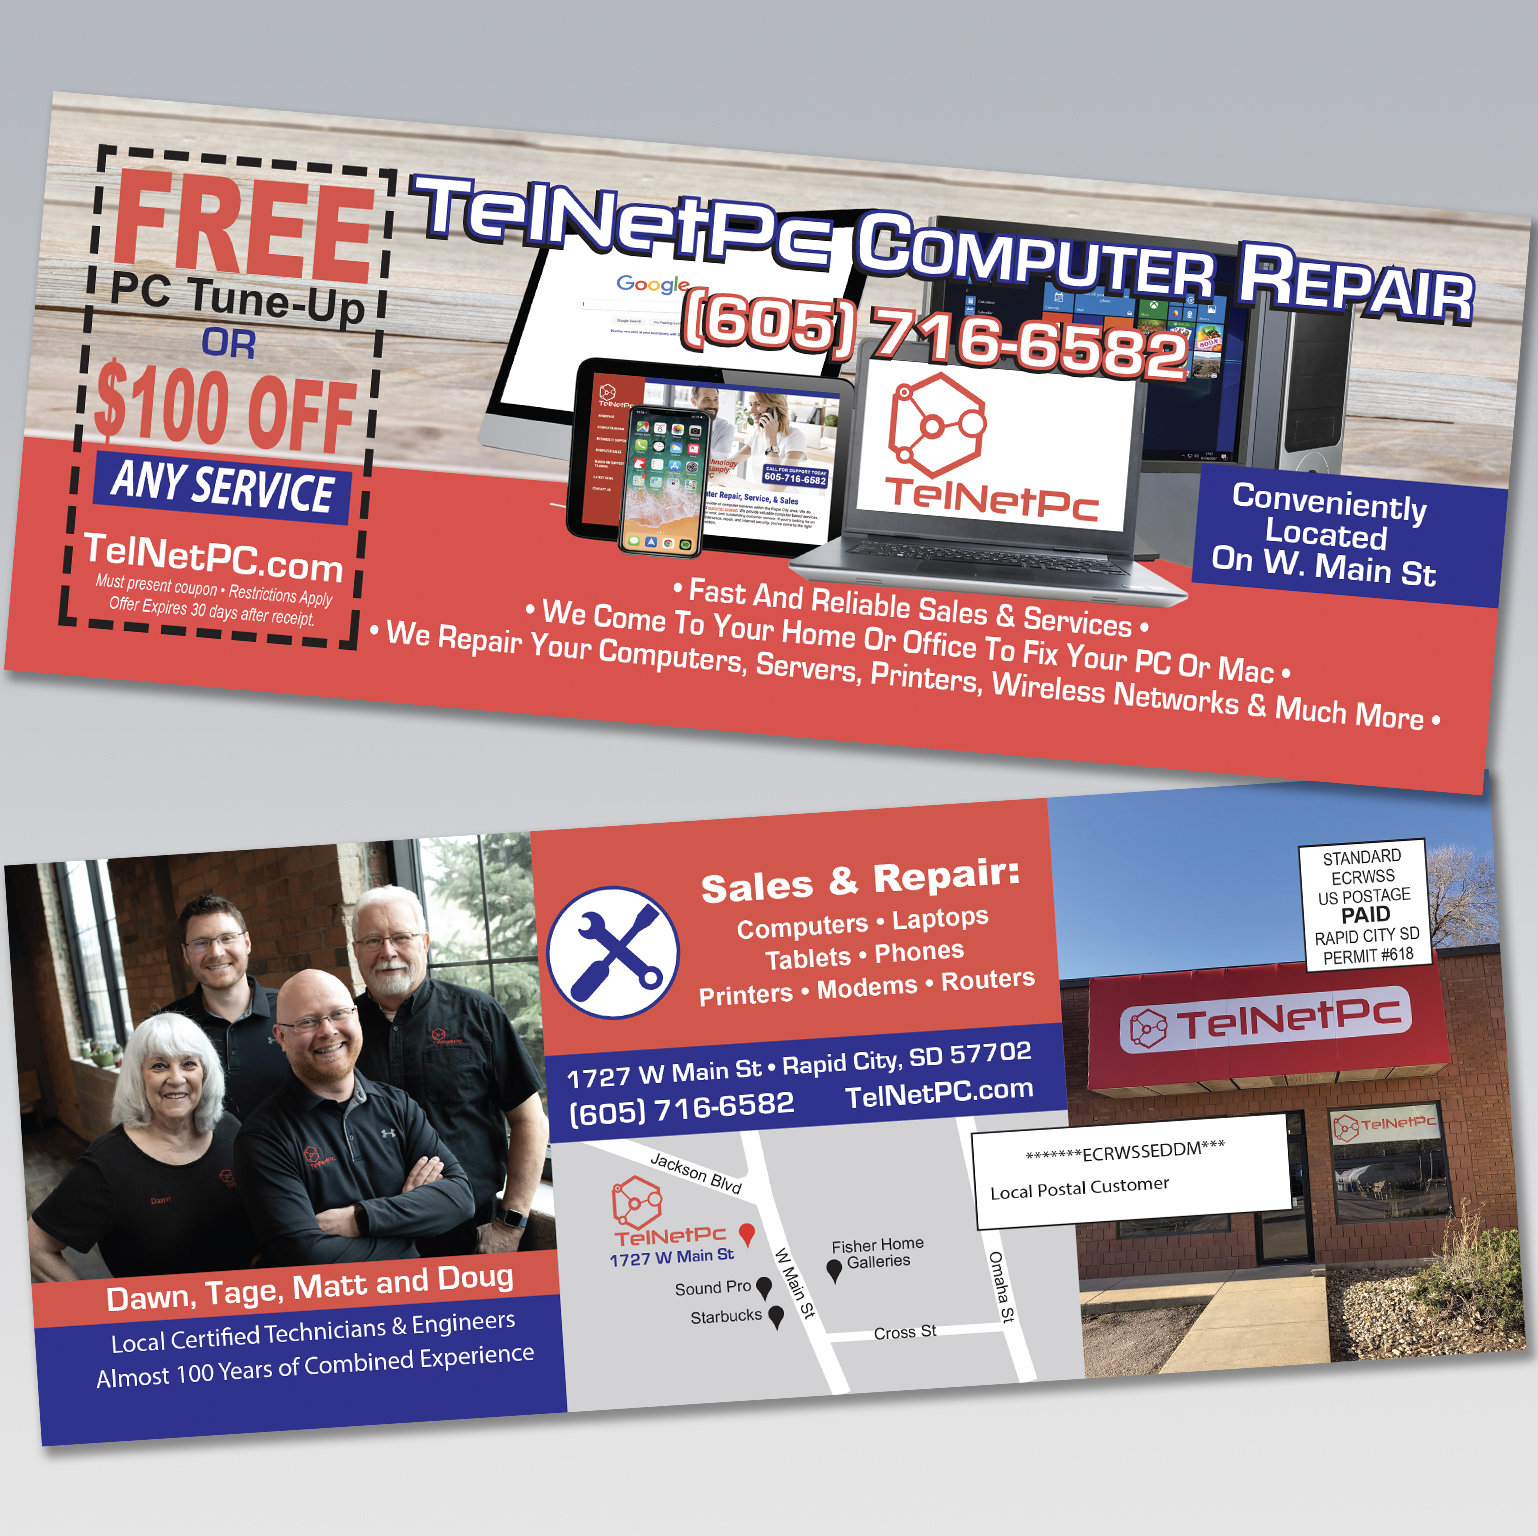 TelNetPc Computer Repair Residential Mailer - Dot Marketing and Website Design